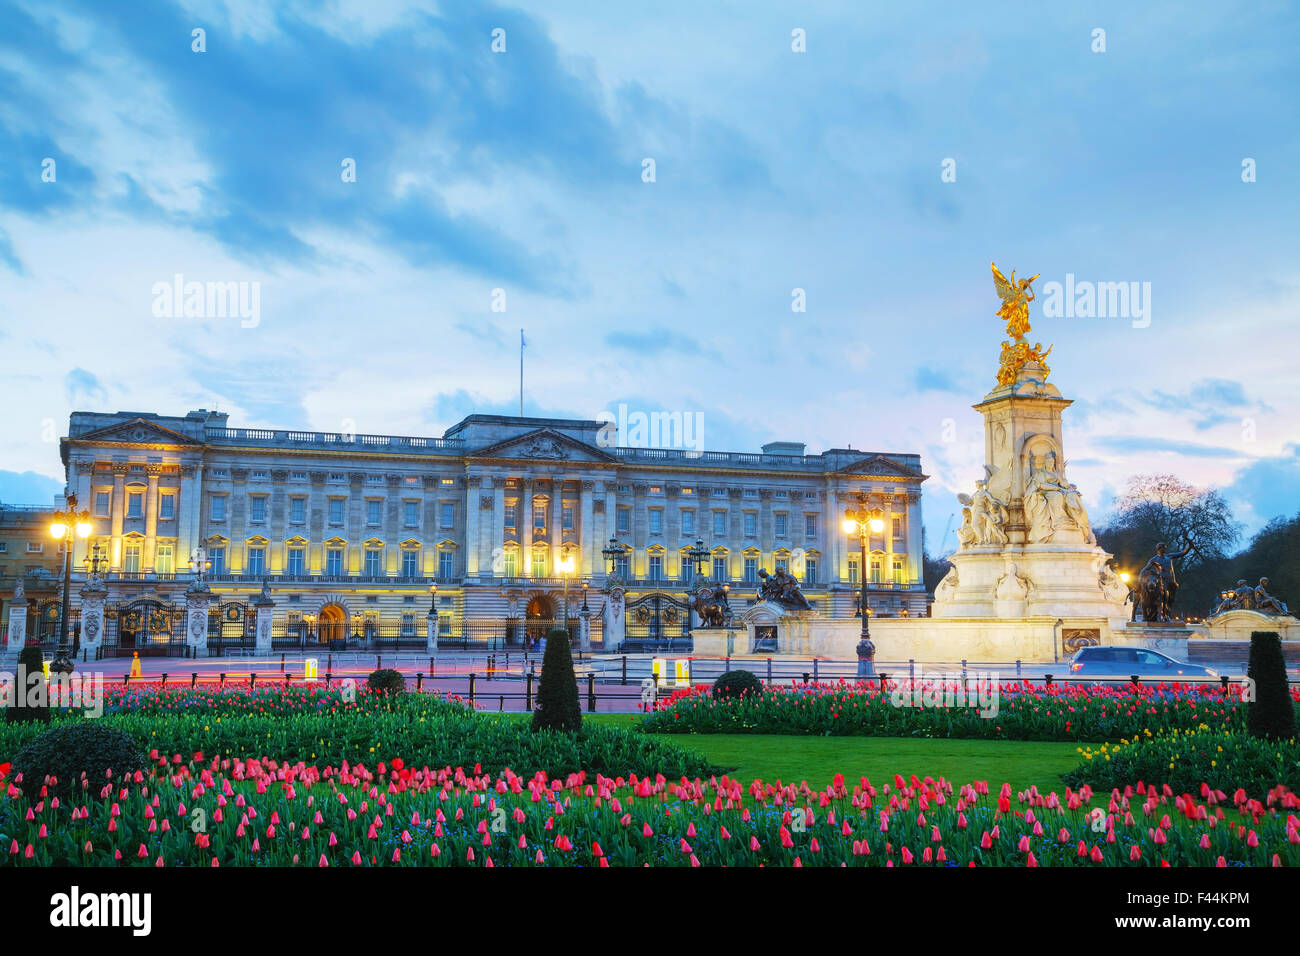 Der Buckingham Palace in London, Großbritannien Stockbild